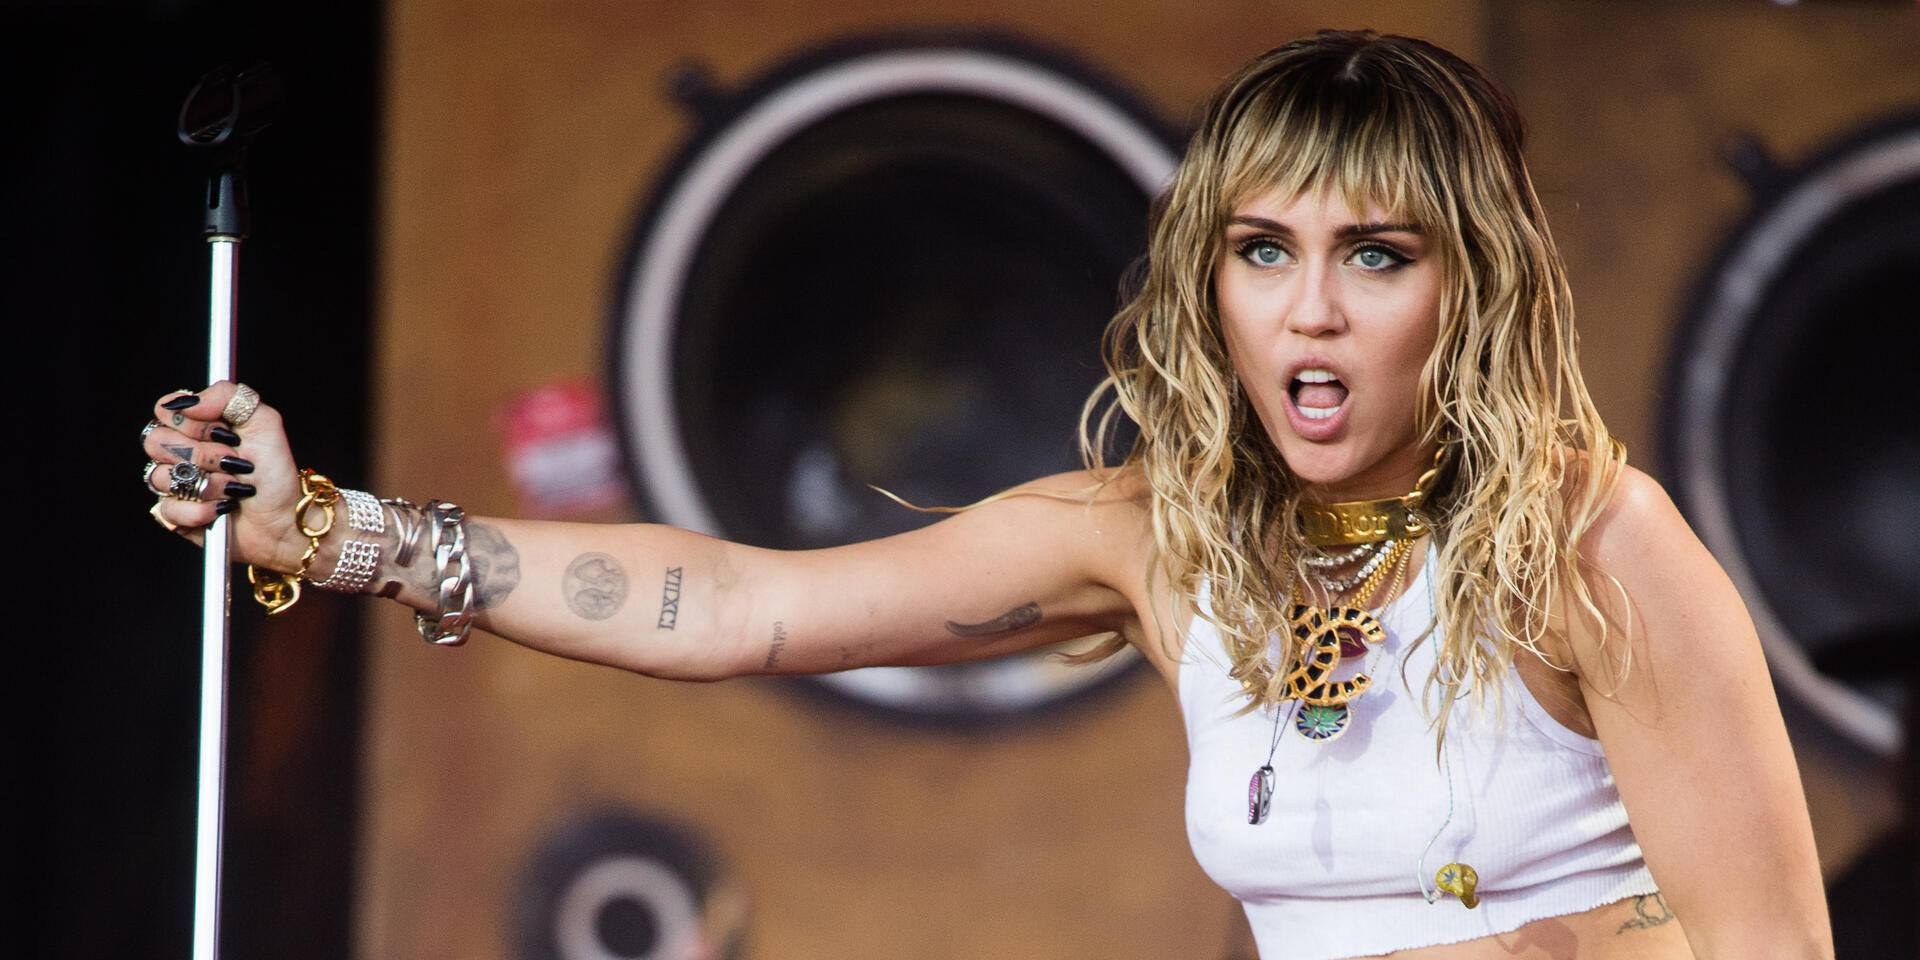 GLASTONBURY, ENGLAND - JUNE 30: Miley Cyrus  performs on the Pyramid Stage during day five of Glastonbury Festival at Worthy Farm, Pilton on June 30, 2019 in Glastonbury, England. (Photo by Samir Hussein/WireImage)